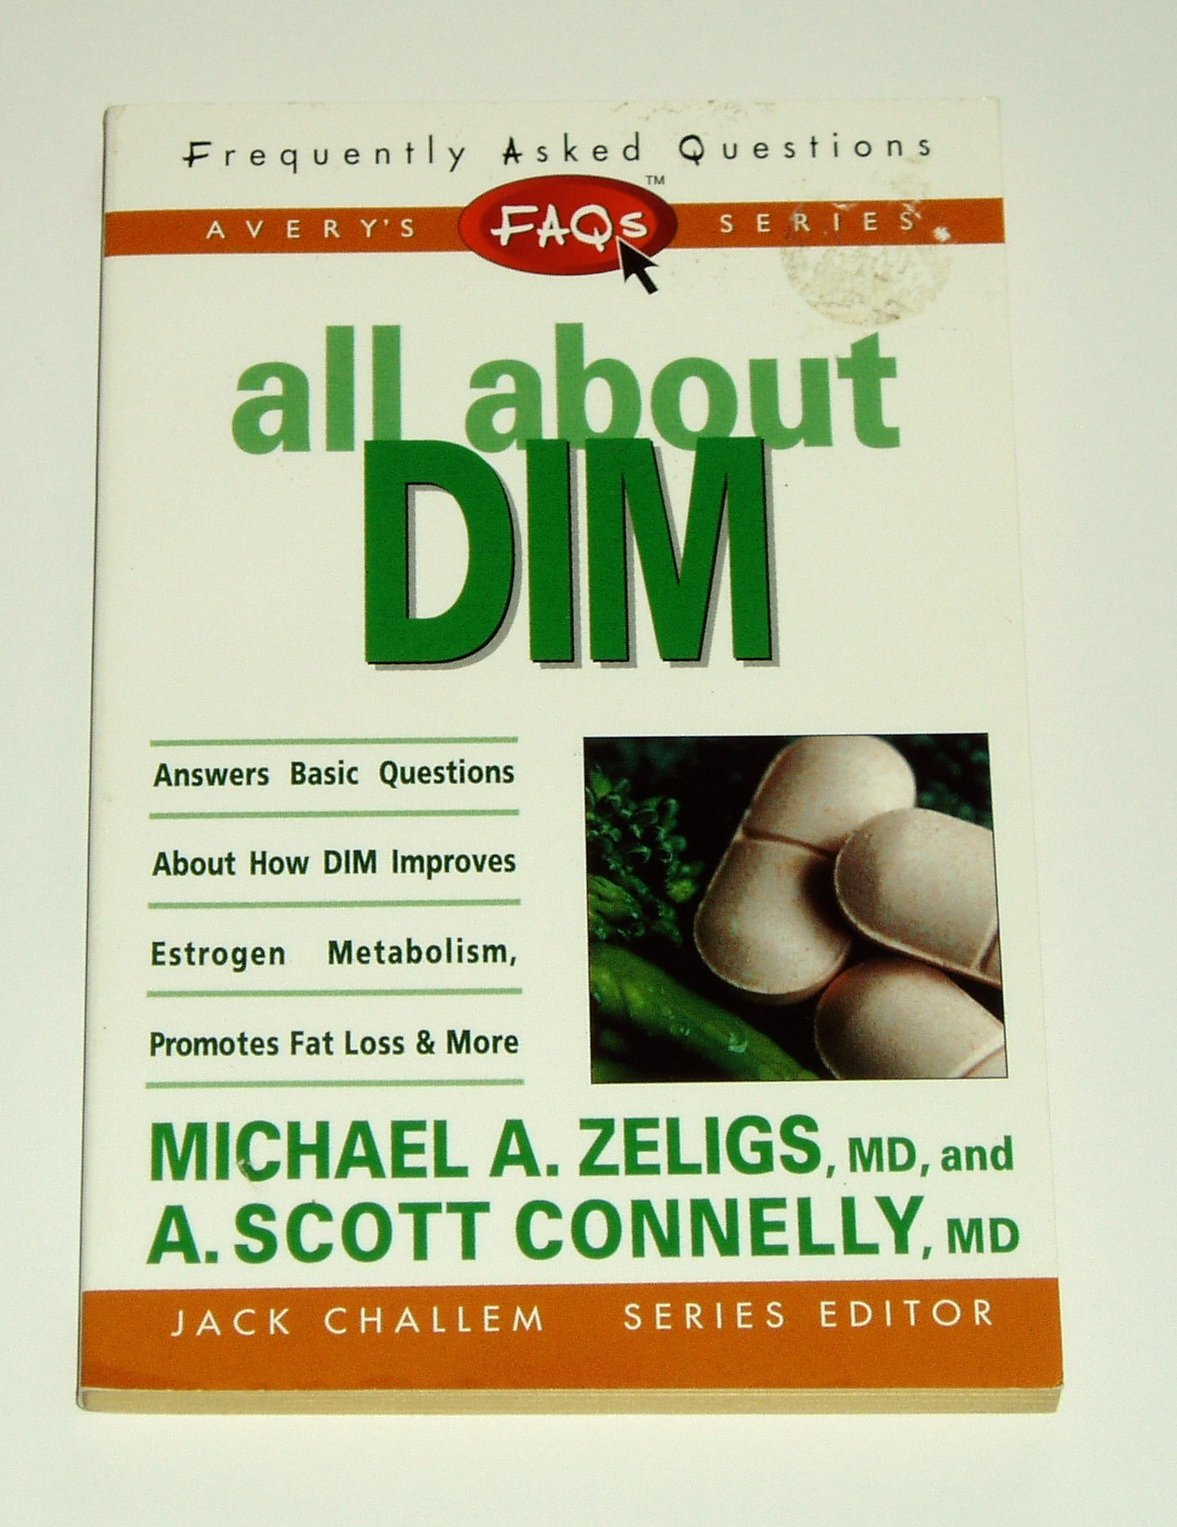 FAQs All about Dim (Freqently Asked Questions): Michael A. Zeligs, A. Scott Connelly: 9781583330791: Amazon.com: Books